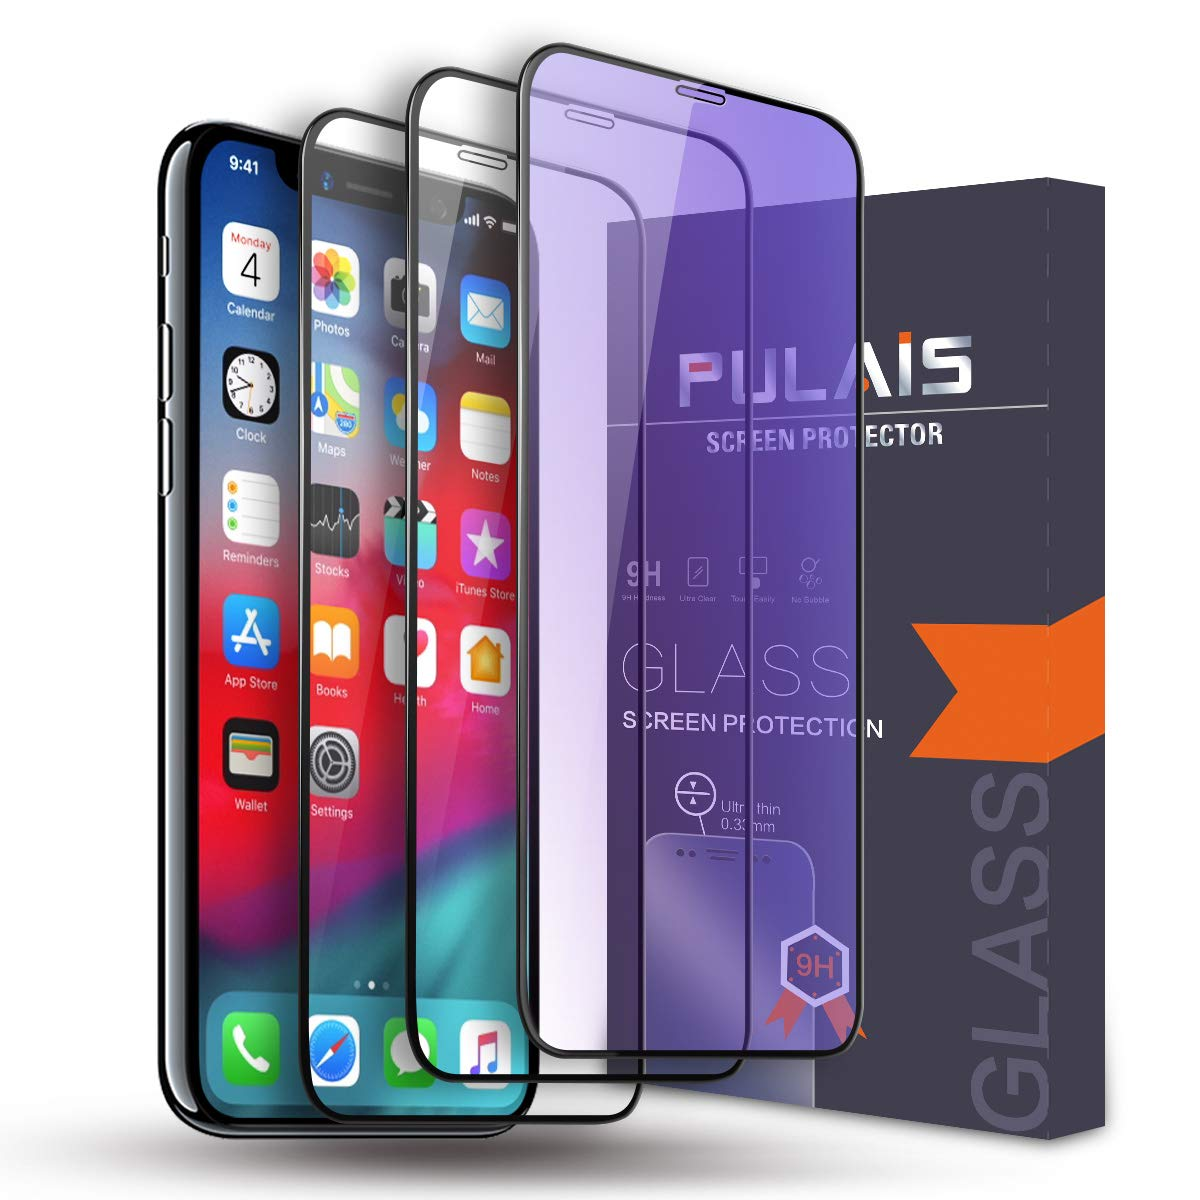 d531e52032cf Amazon.com: Screen Protector for iPhone Xs Max,Pulais iPhone Xs max Tempered  Glass Screen Protector (6.5'' 2018) [3 Pack]: Cell Phones & Accessories